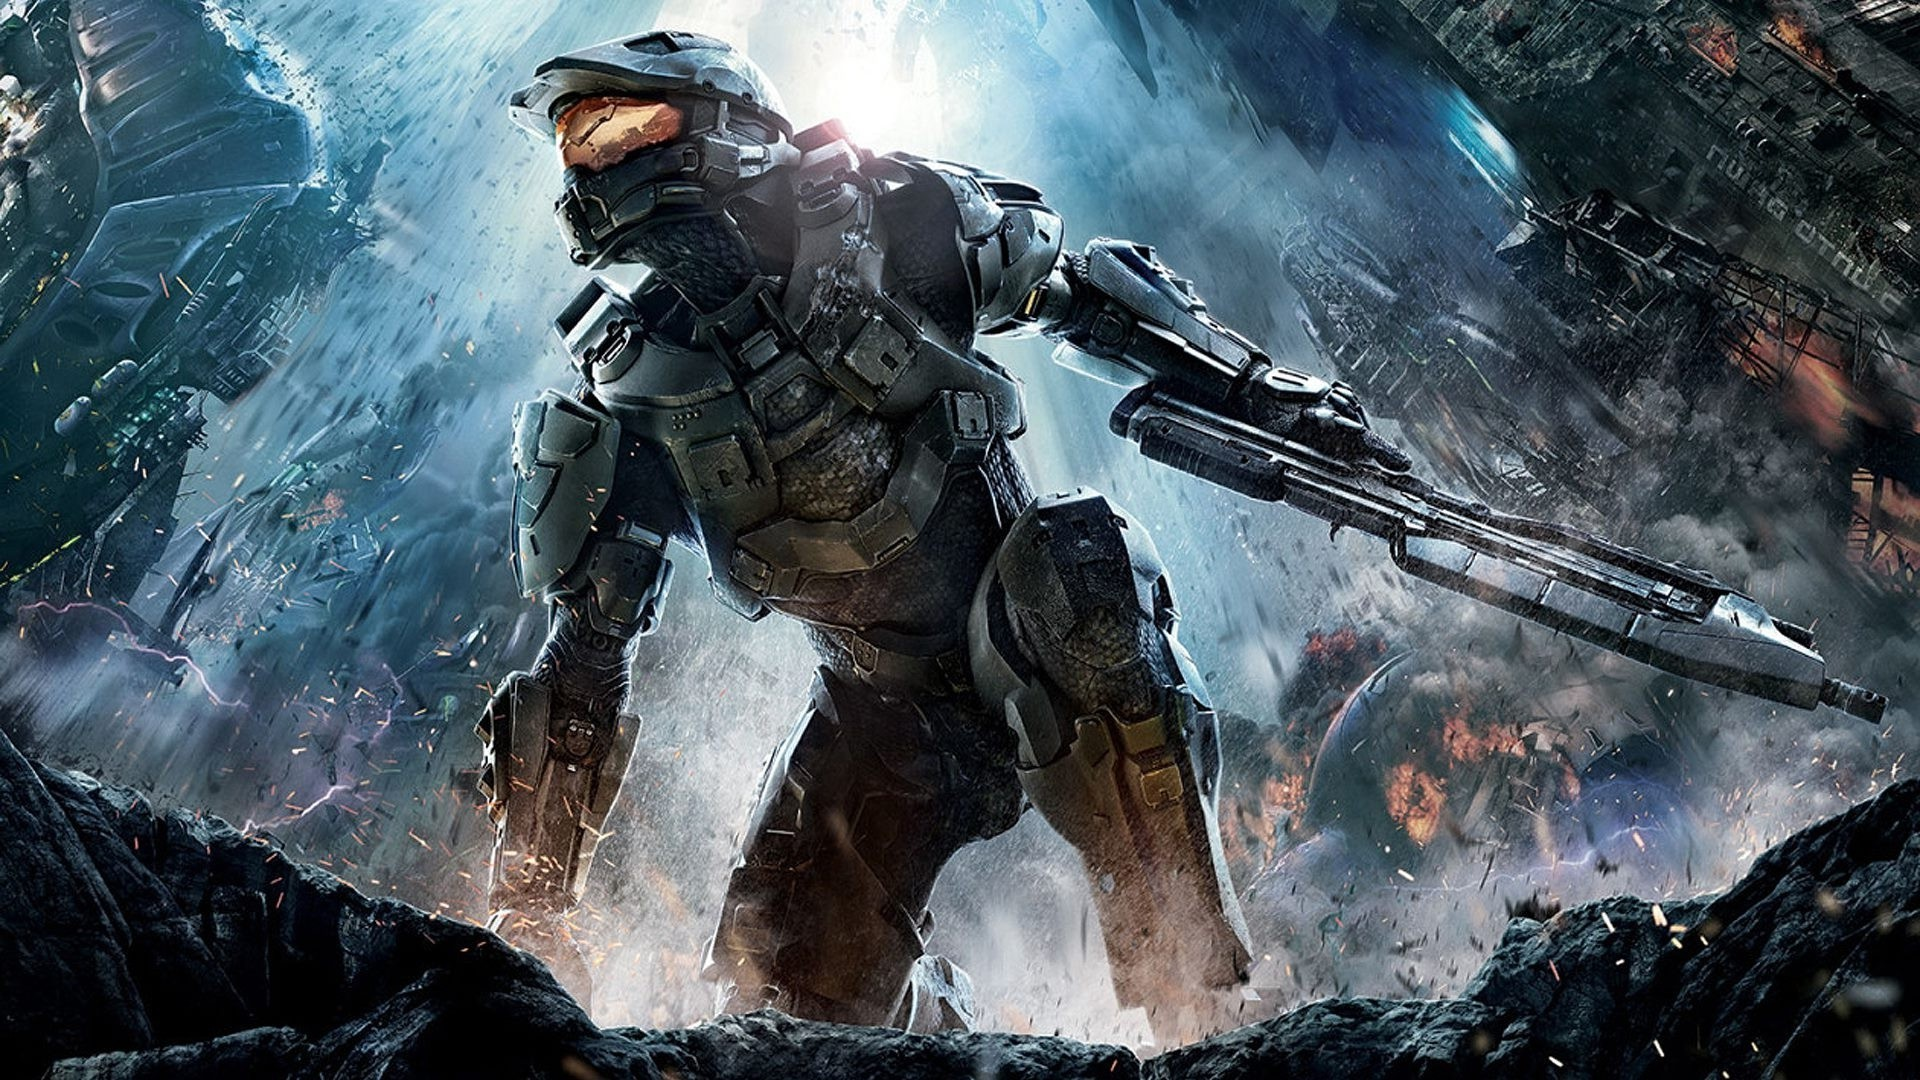 Halo 4 wallpaper 1080p 75 images - Halo 4 photos ...